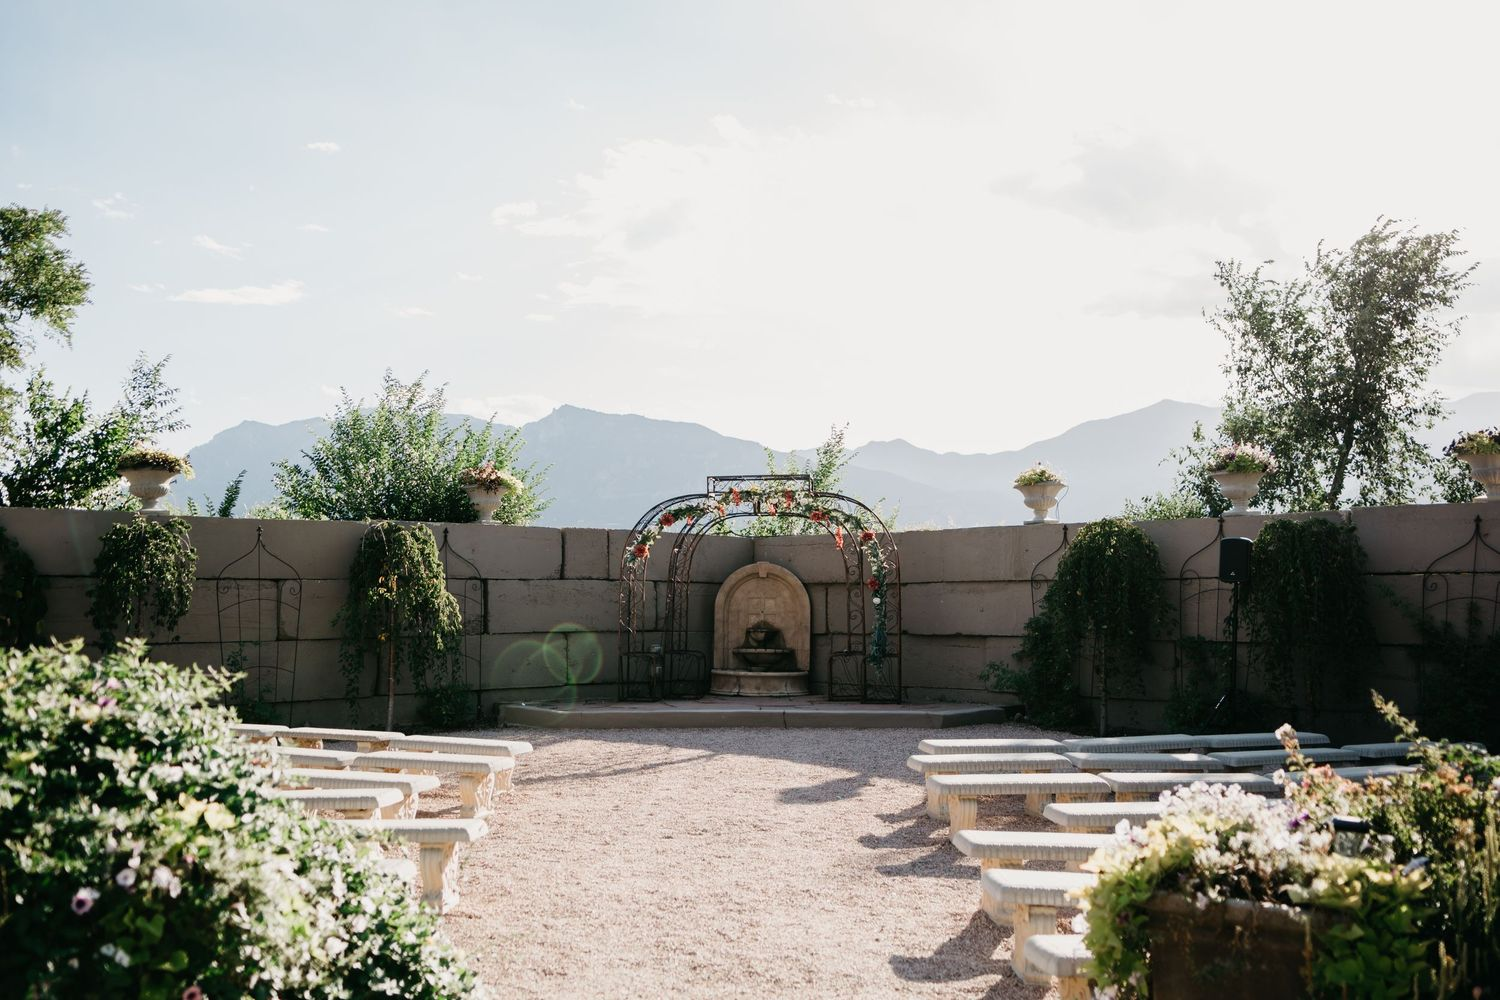 Floral Wedding Ideas, Hillside Gardens, Wedding Archway, Colorado Wedding Ideas, Colorado Springs Summer Wedding